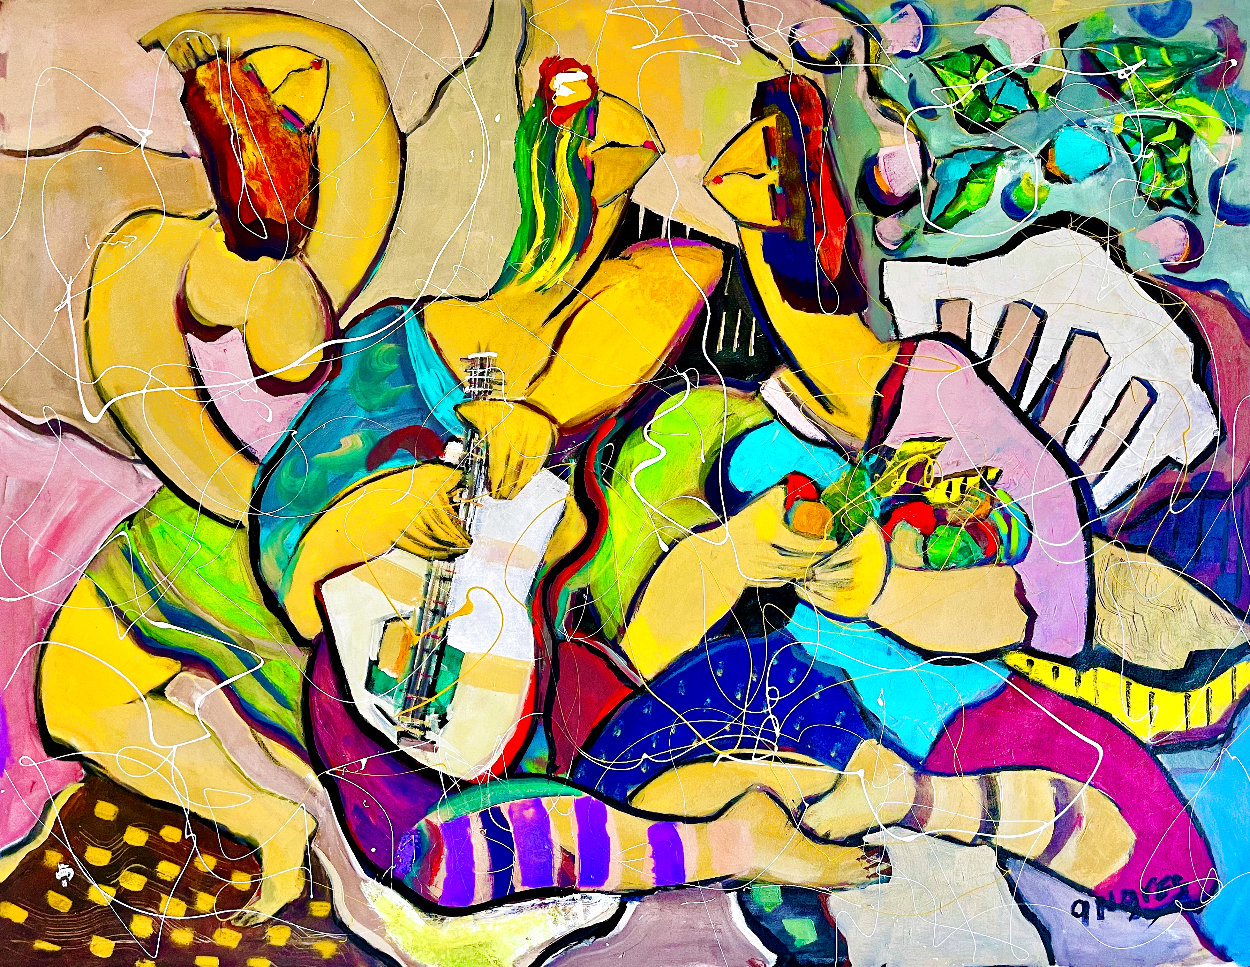 Playing Footsies 2014 48x58 Huge Original Painting by Giora Angres